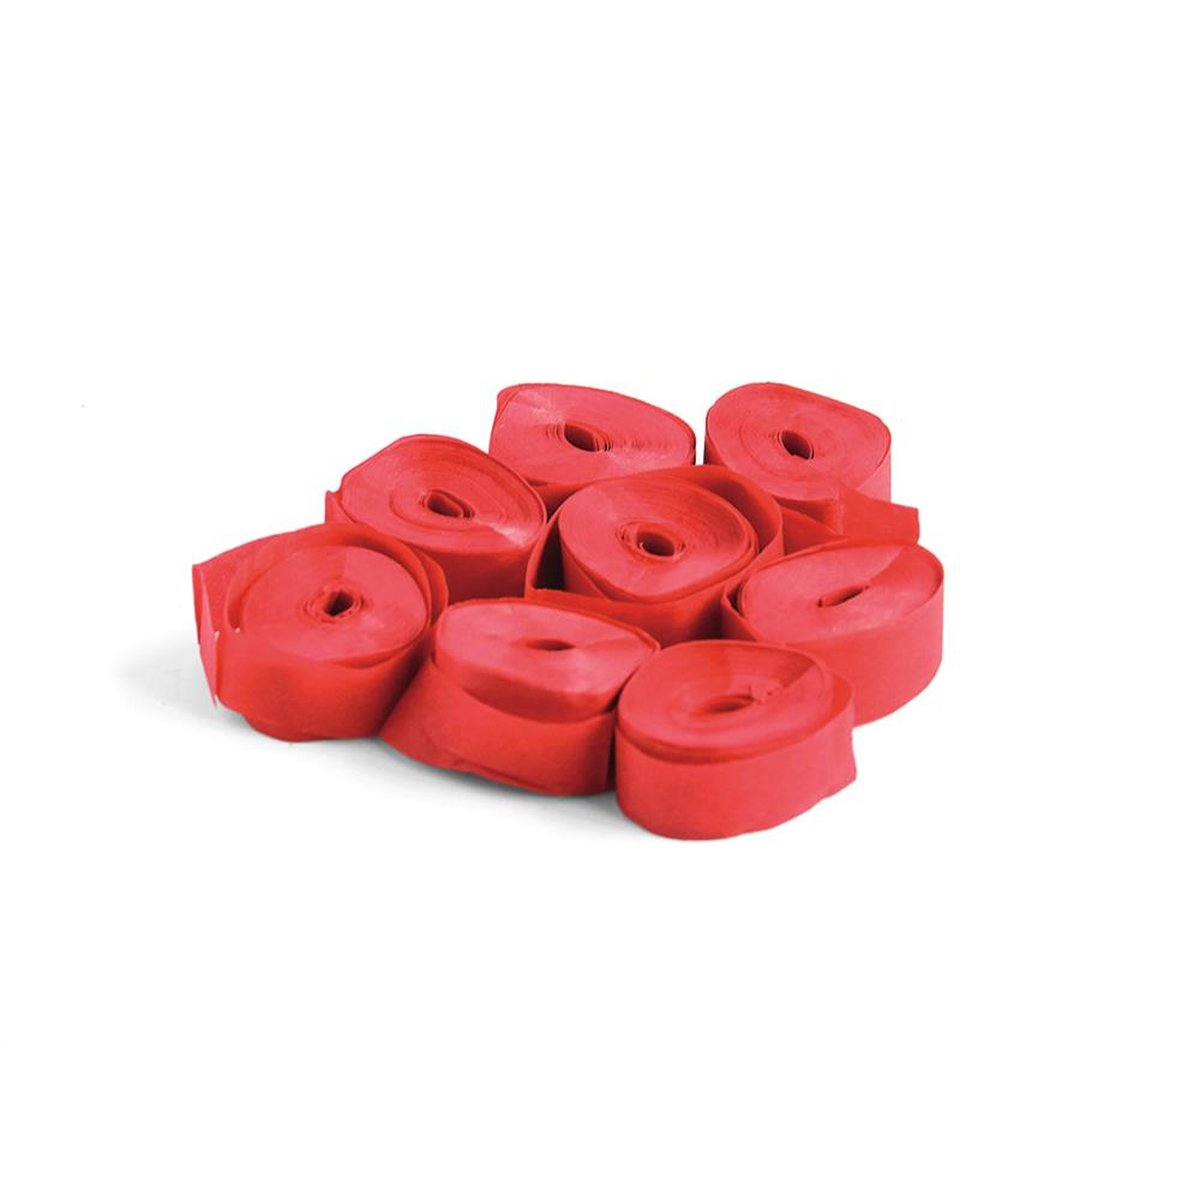 TCM FX Slowfall Streamers 5mx0.85cm, red, 100x